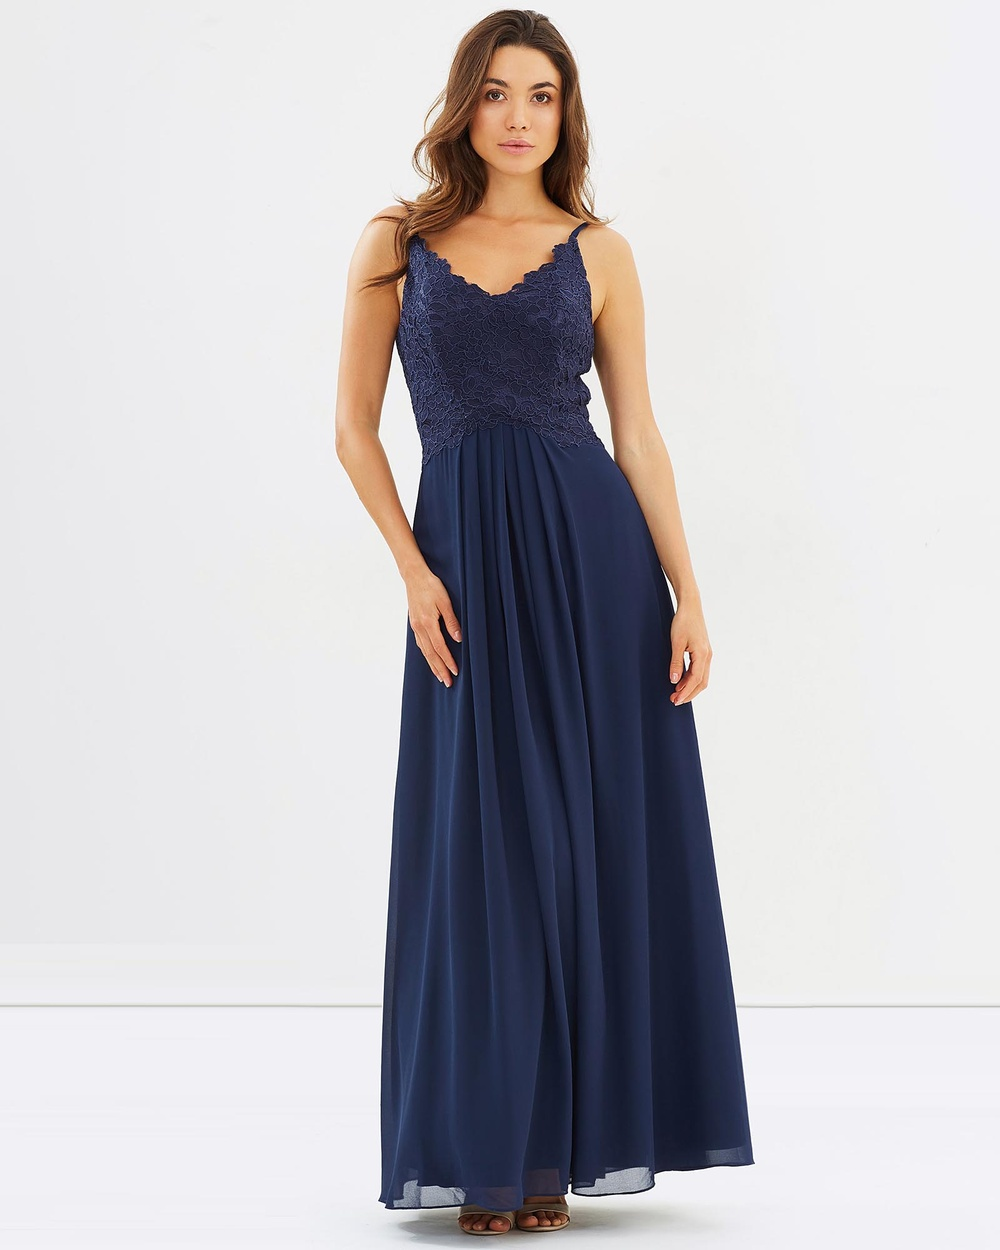 Alabaster The Label New Romantic Dress Bridesmaid Dresses Navy New Romantic Dress